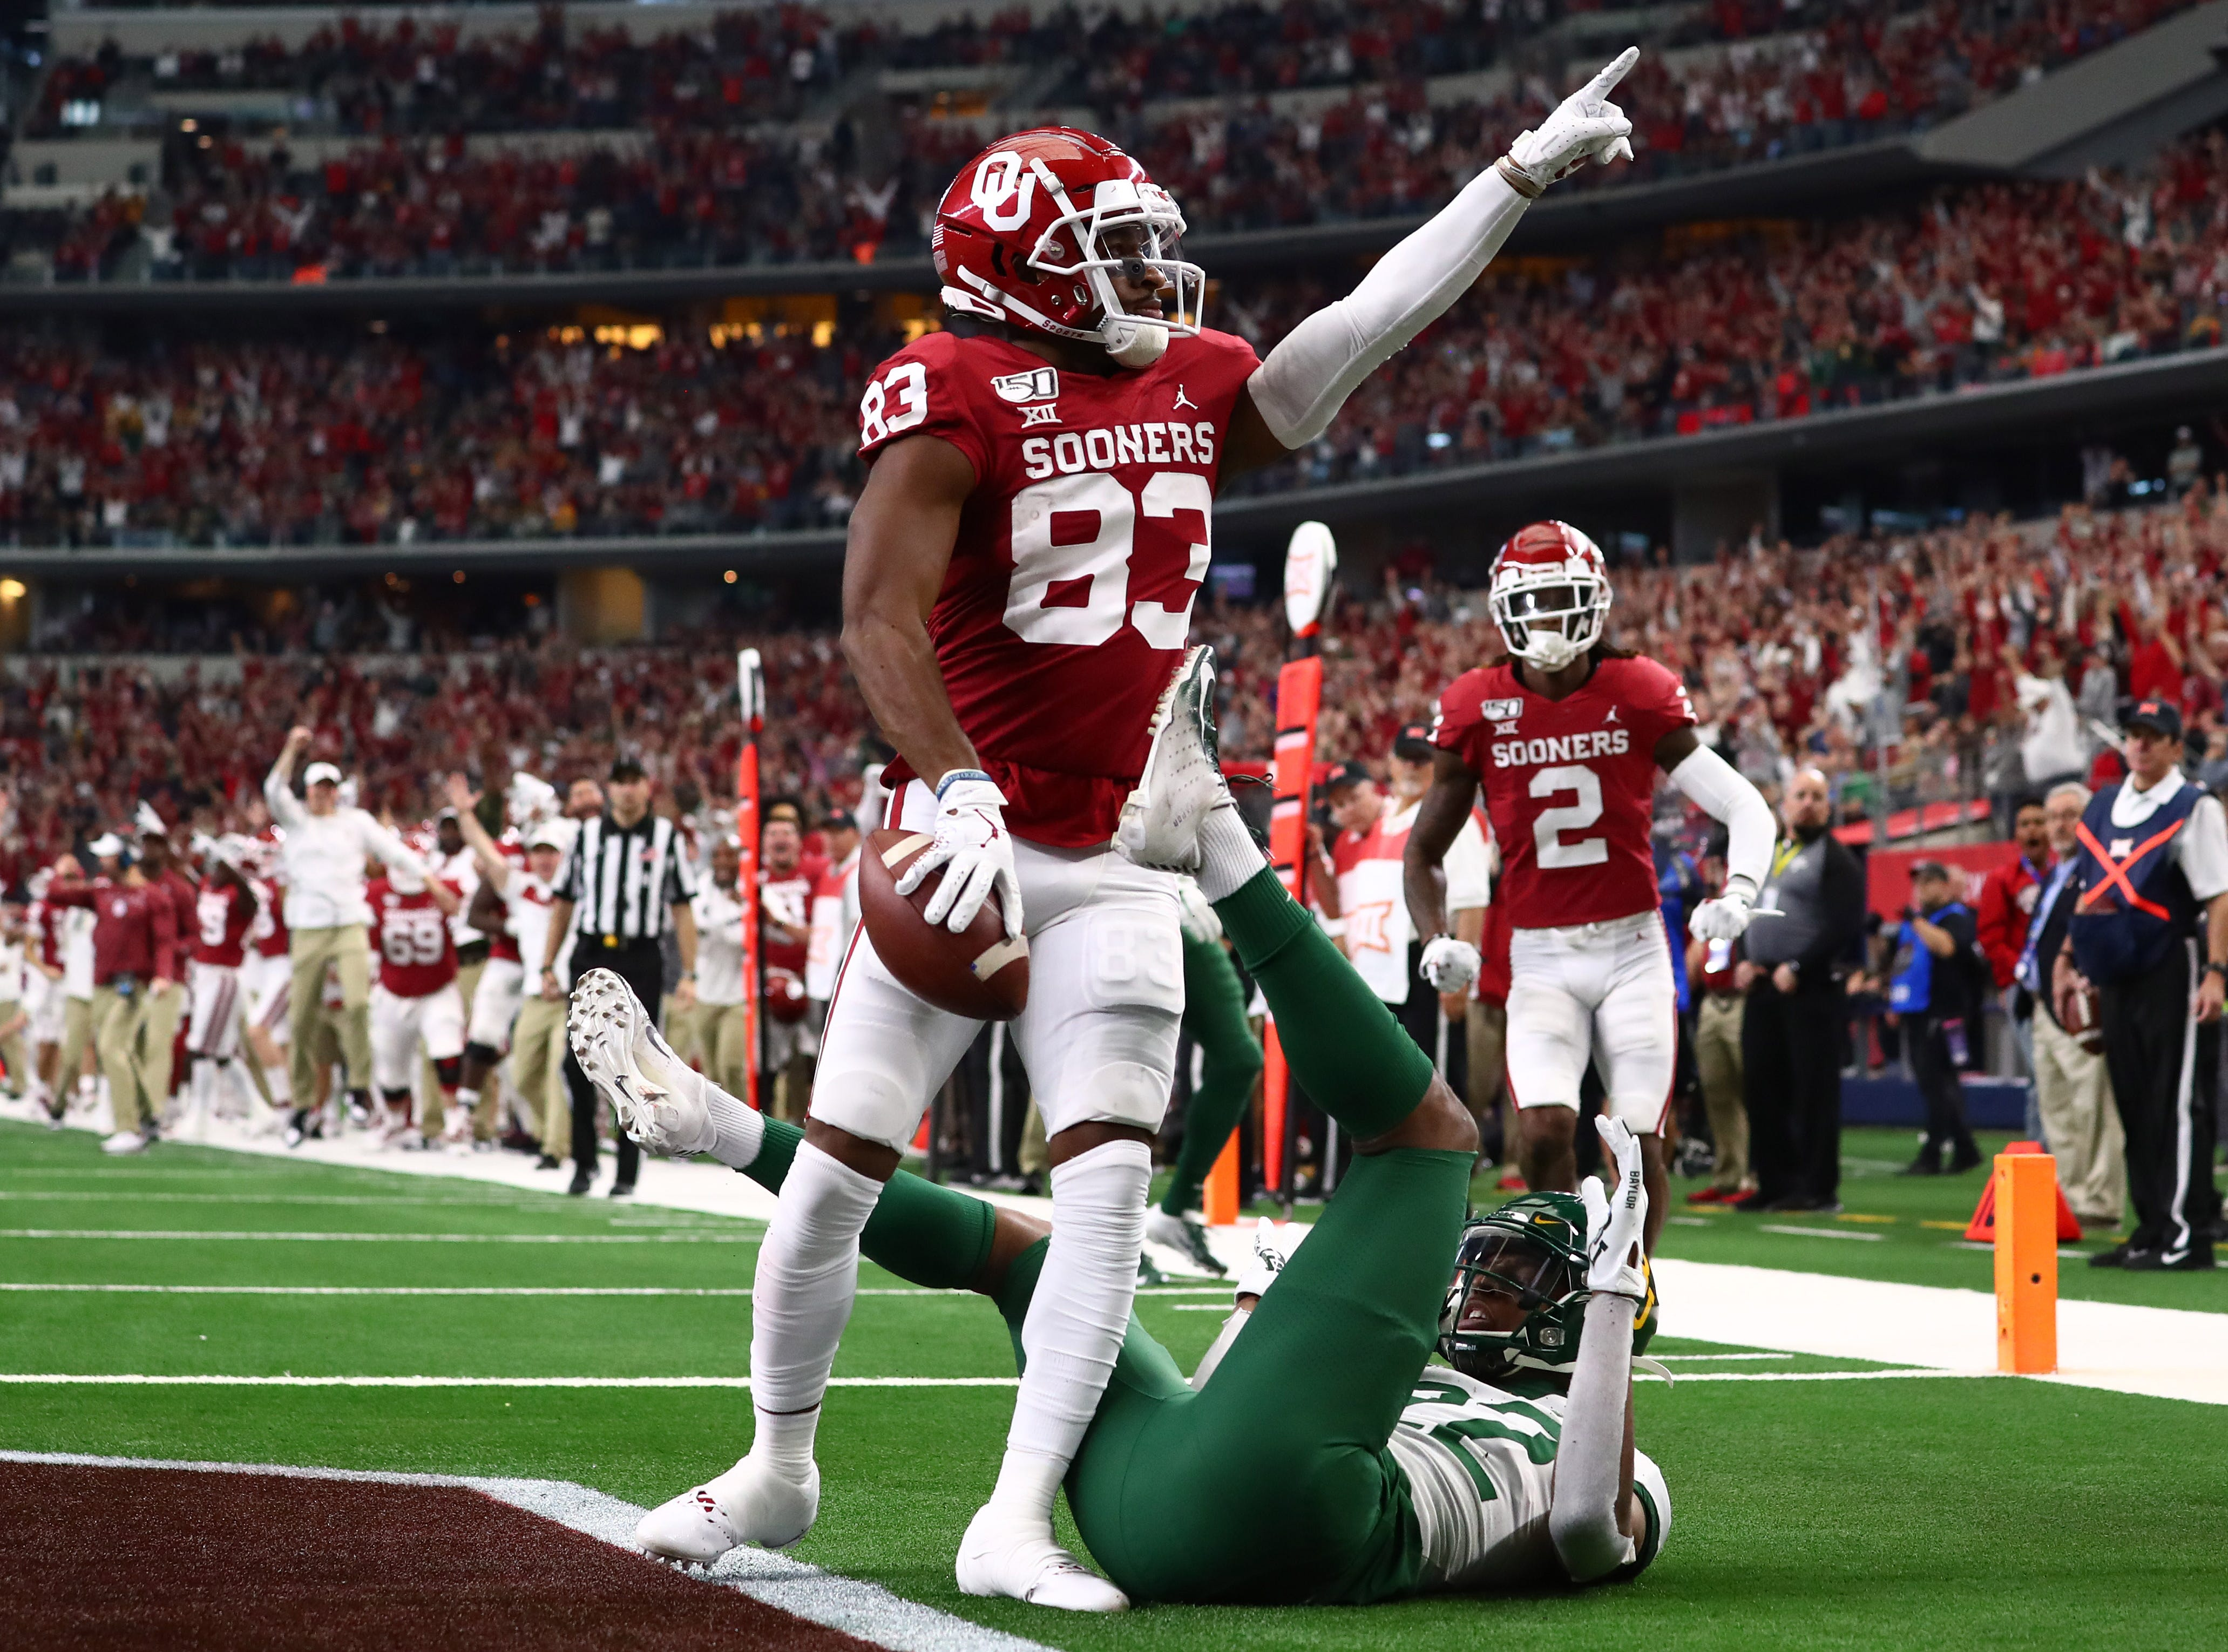 Oklahoma In College Football Playoff Race With Big 12 Title Vs Baylor